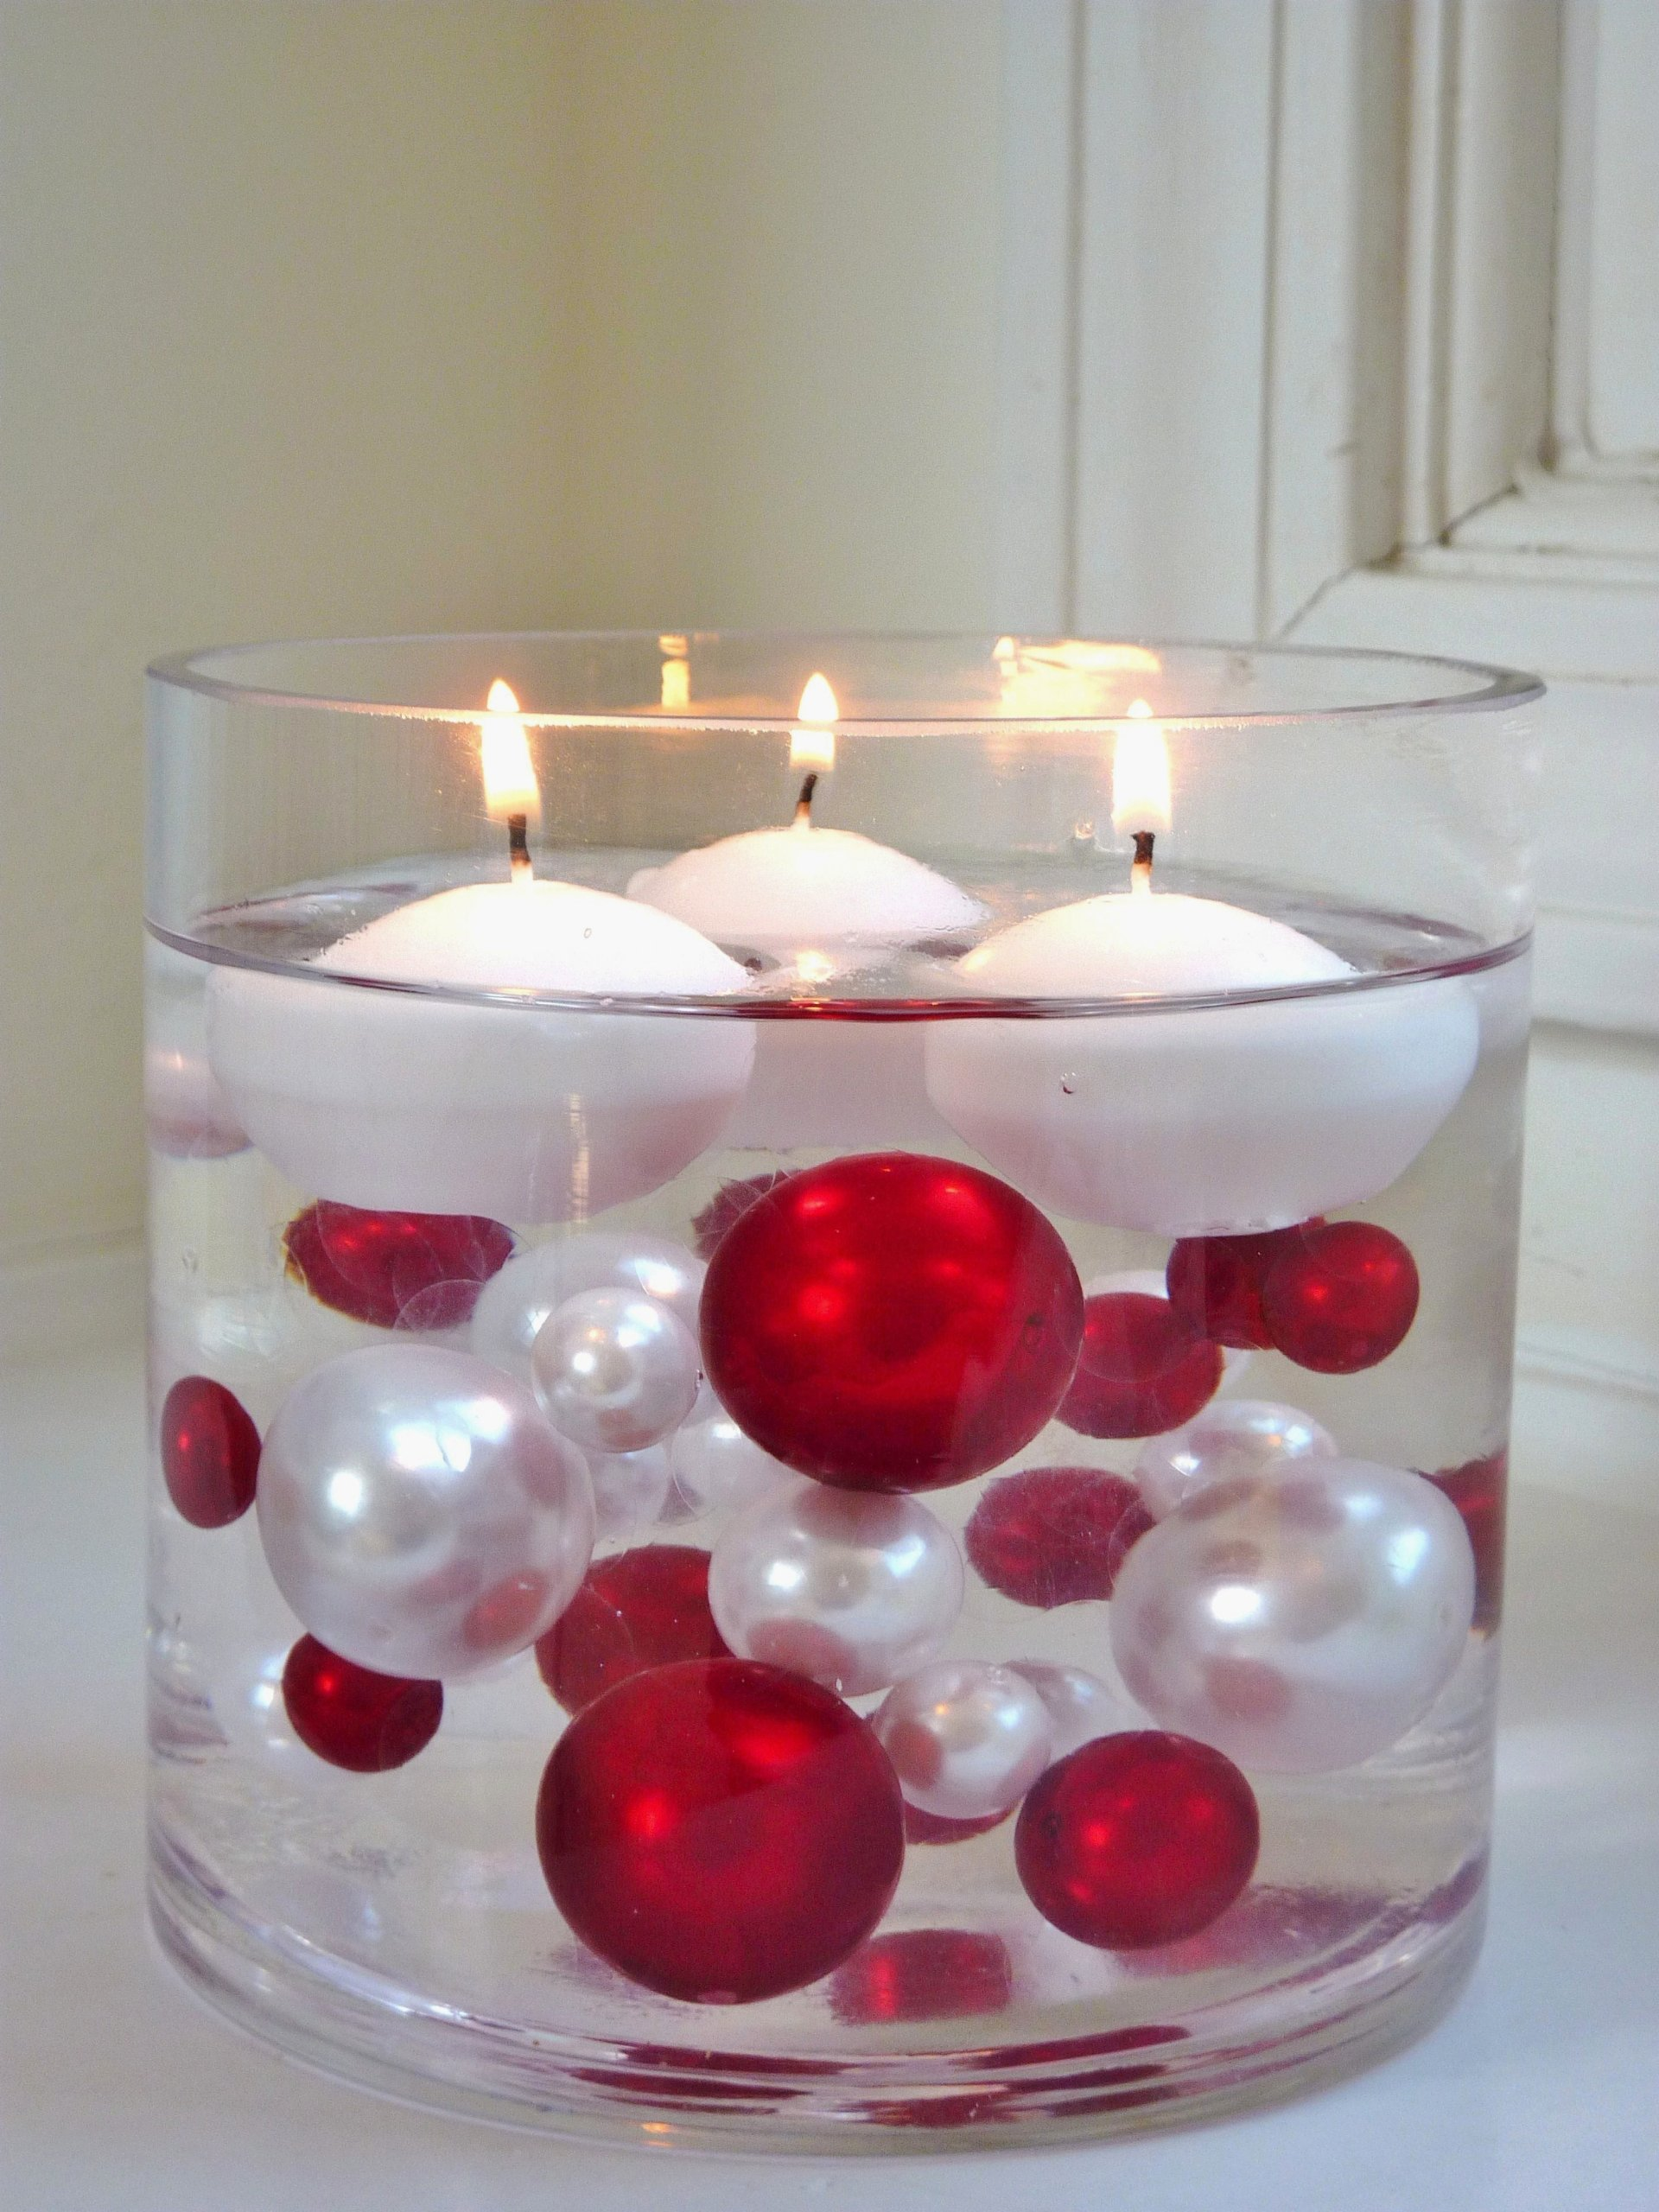 40 Floating Unique Christmas Holiday Jumbo/Assorted Sizes Green, White Pearls, Red, Green and Sparkling Gems Vase Fillers for Decorating Centerpieces + Free Transparent Water Gels Jumbo Packet by Vase Pearlfection (Image #1)